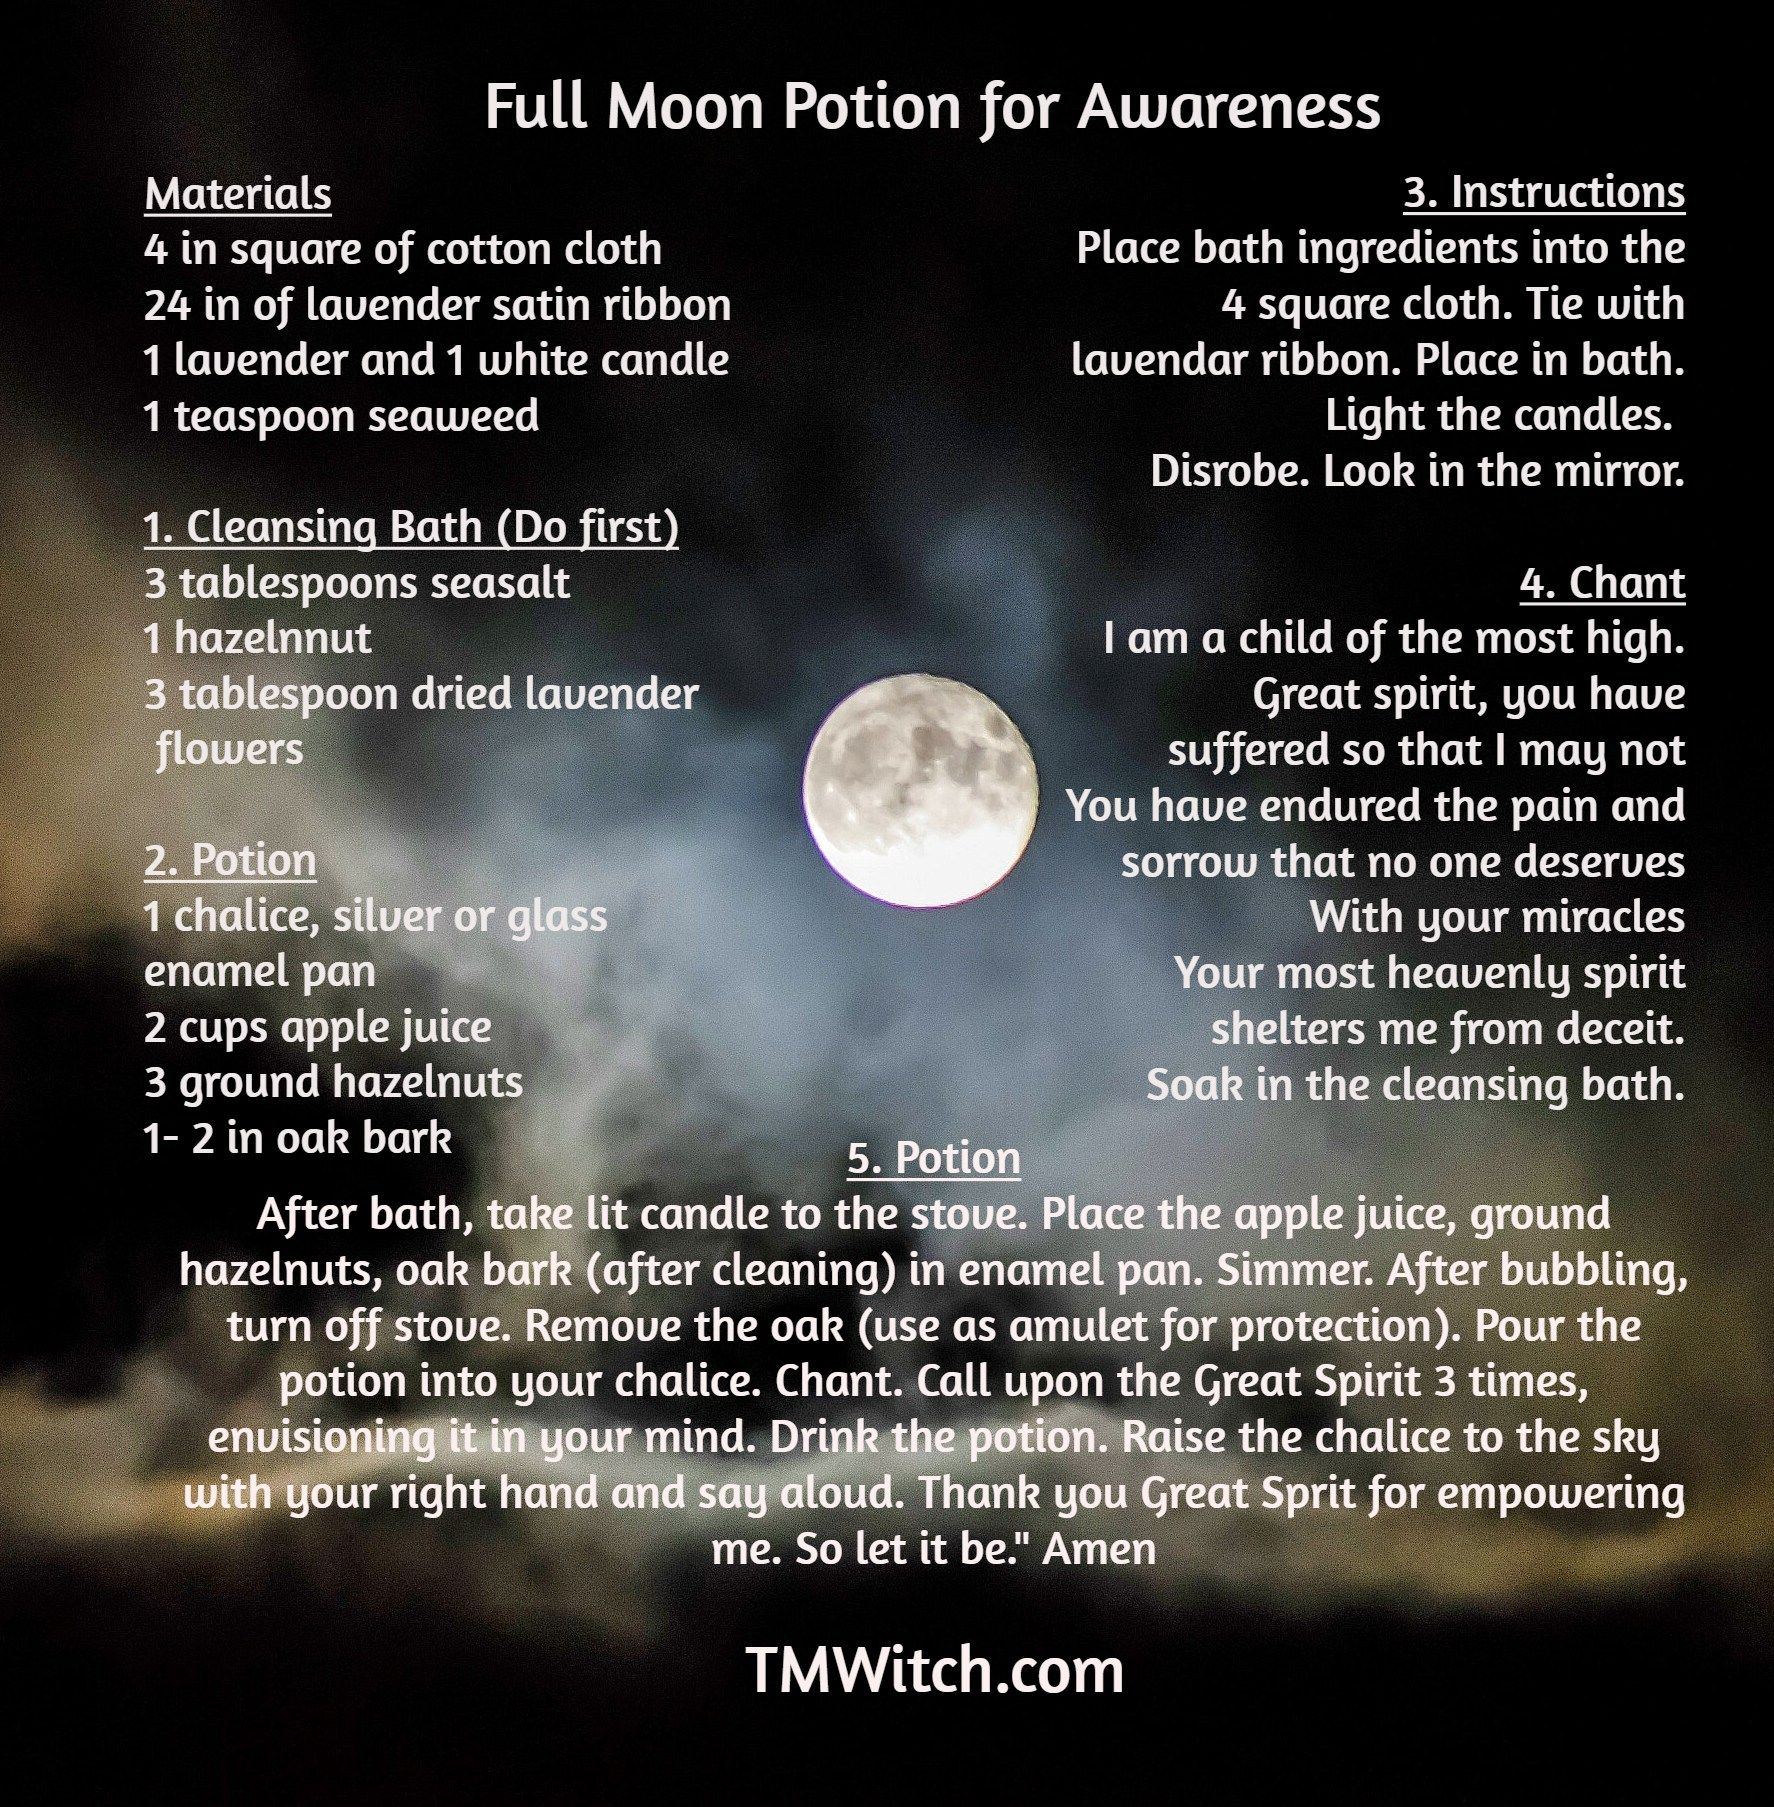 On May 18th There Will Be A Full Moon Use This Ritual To